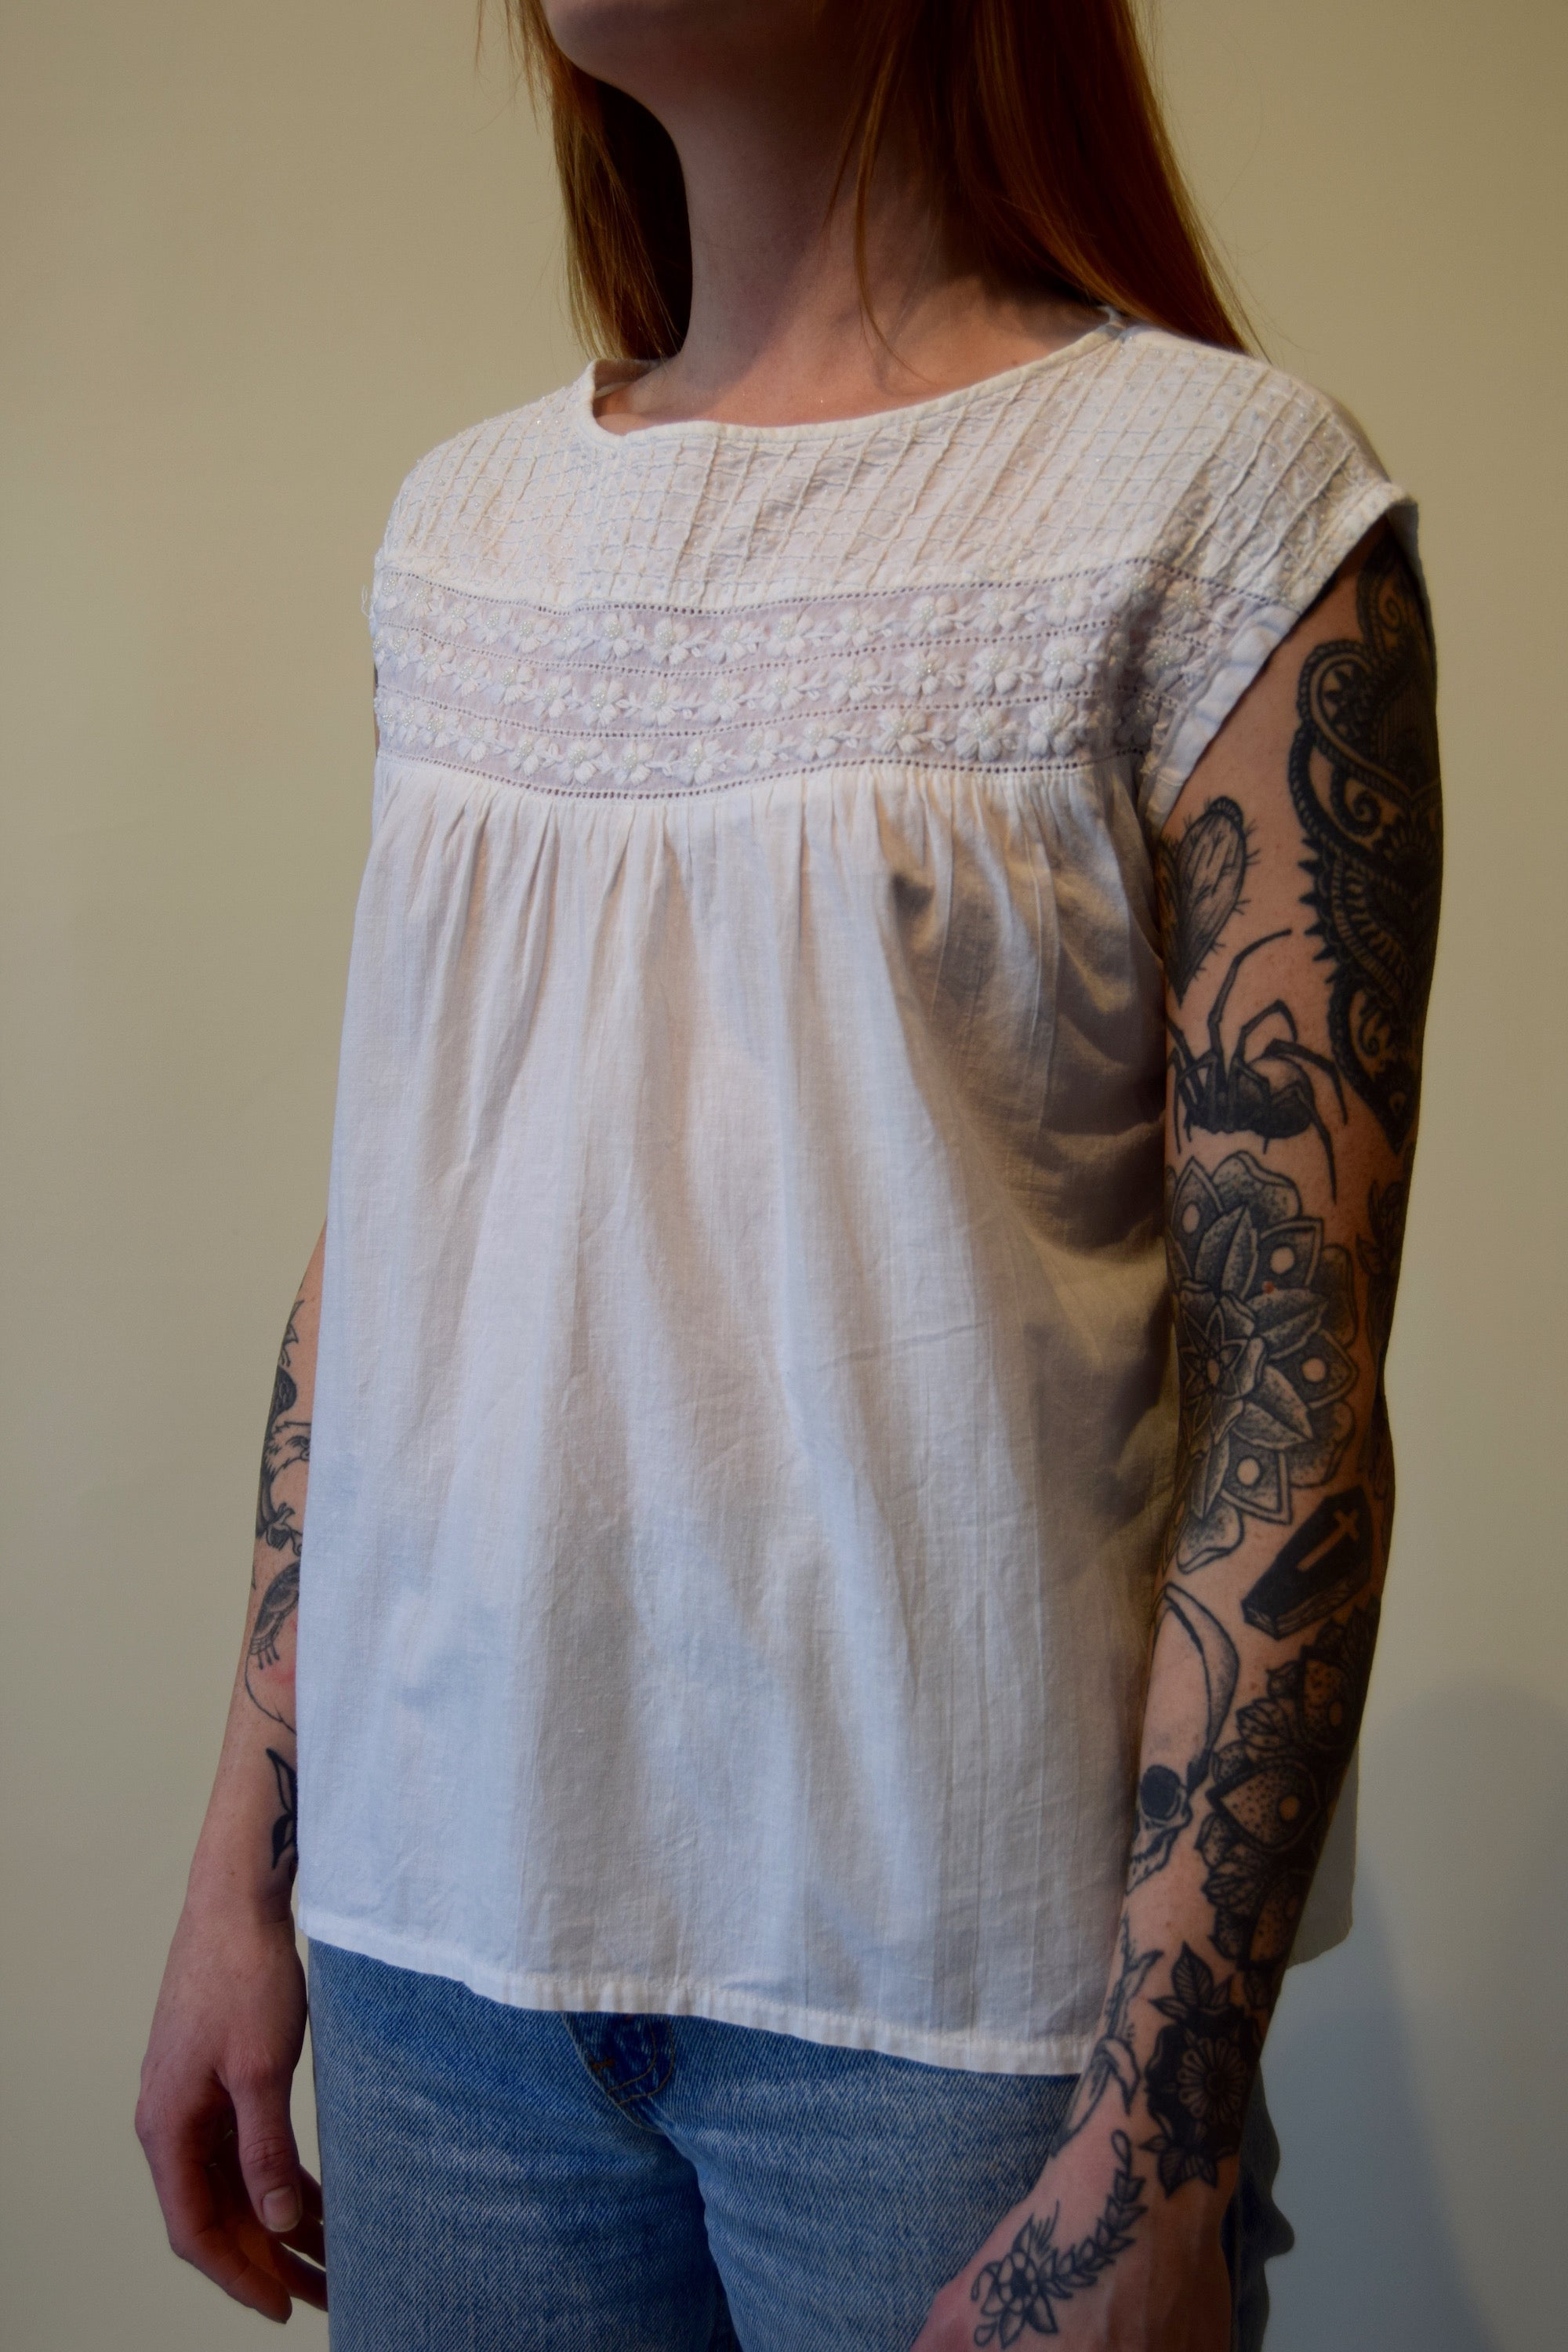 Vintage White Indian Cotton Beaded Sleeveless Top